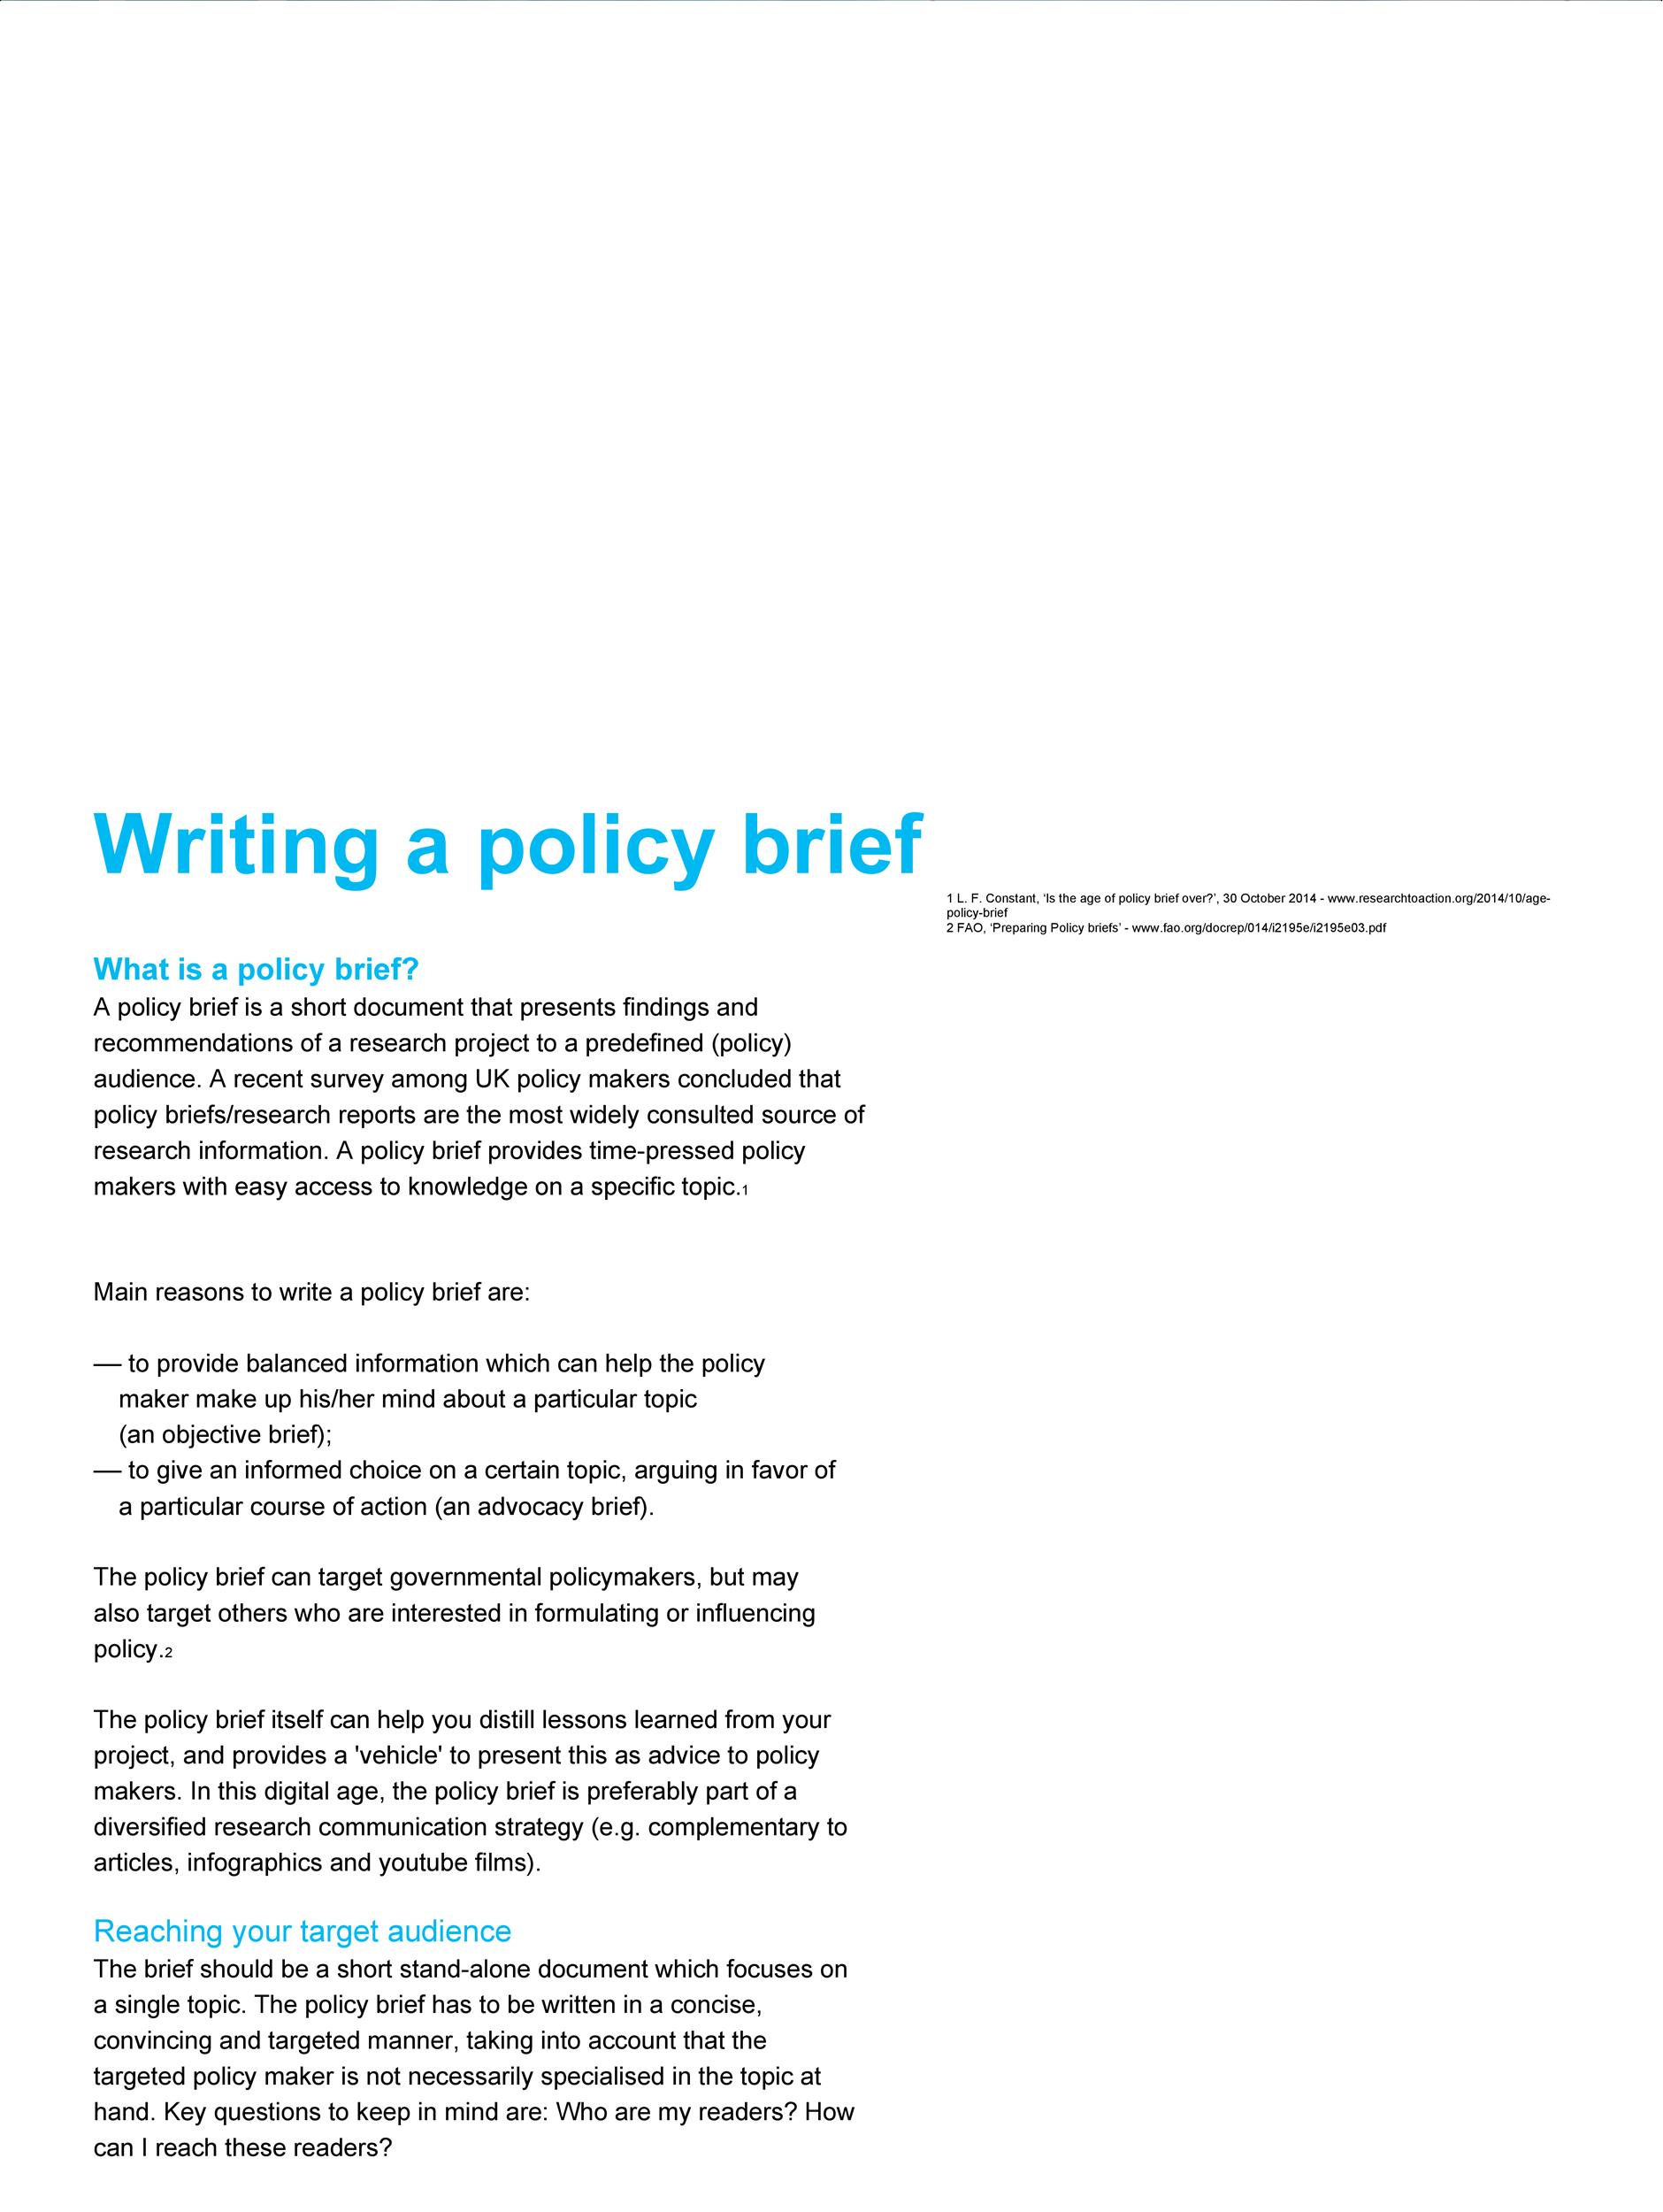 Free policy brief template 49